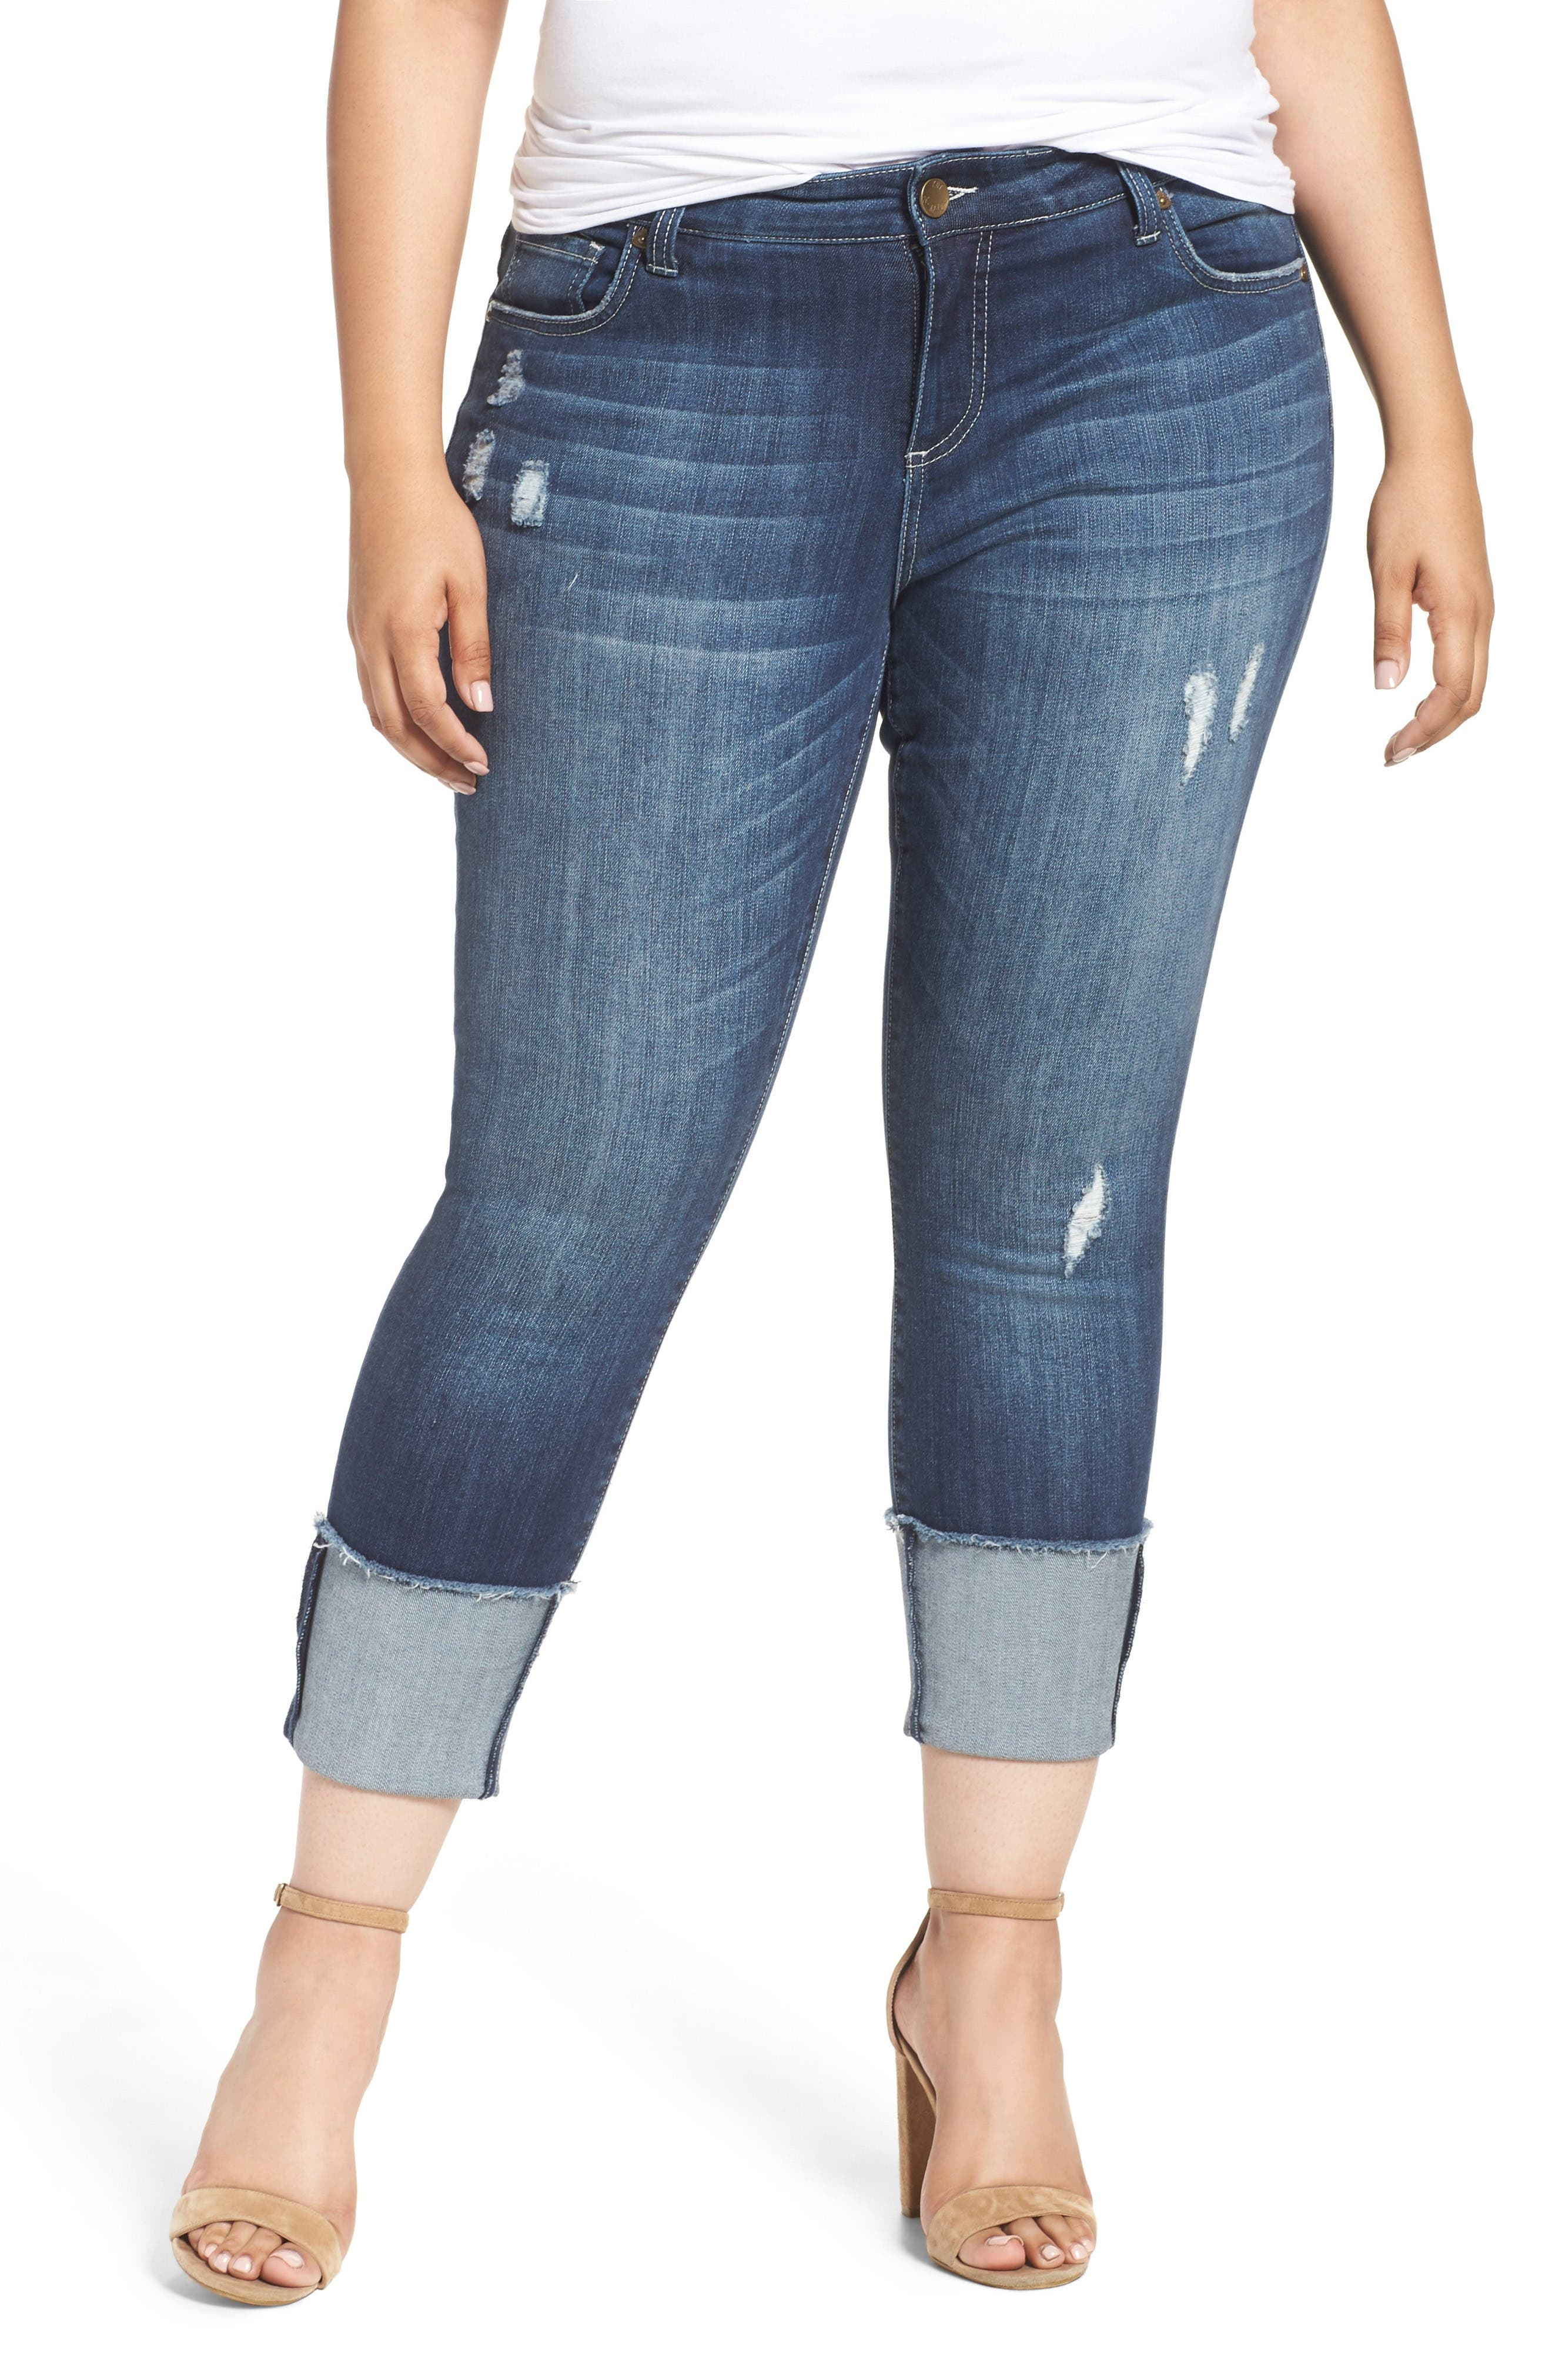 Alternate Image 1 Selected - KUT from the Kloth Cameron Cuffed Straight Leg Jeans (Arresting) (Plus Size)